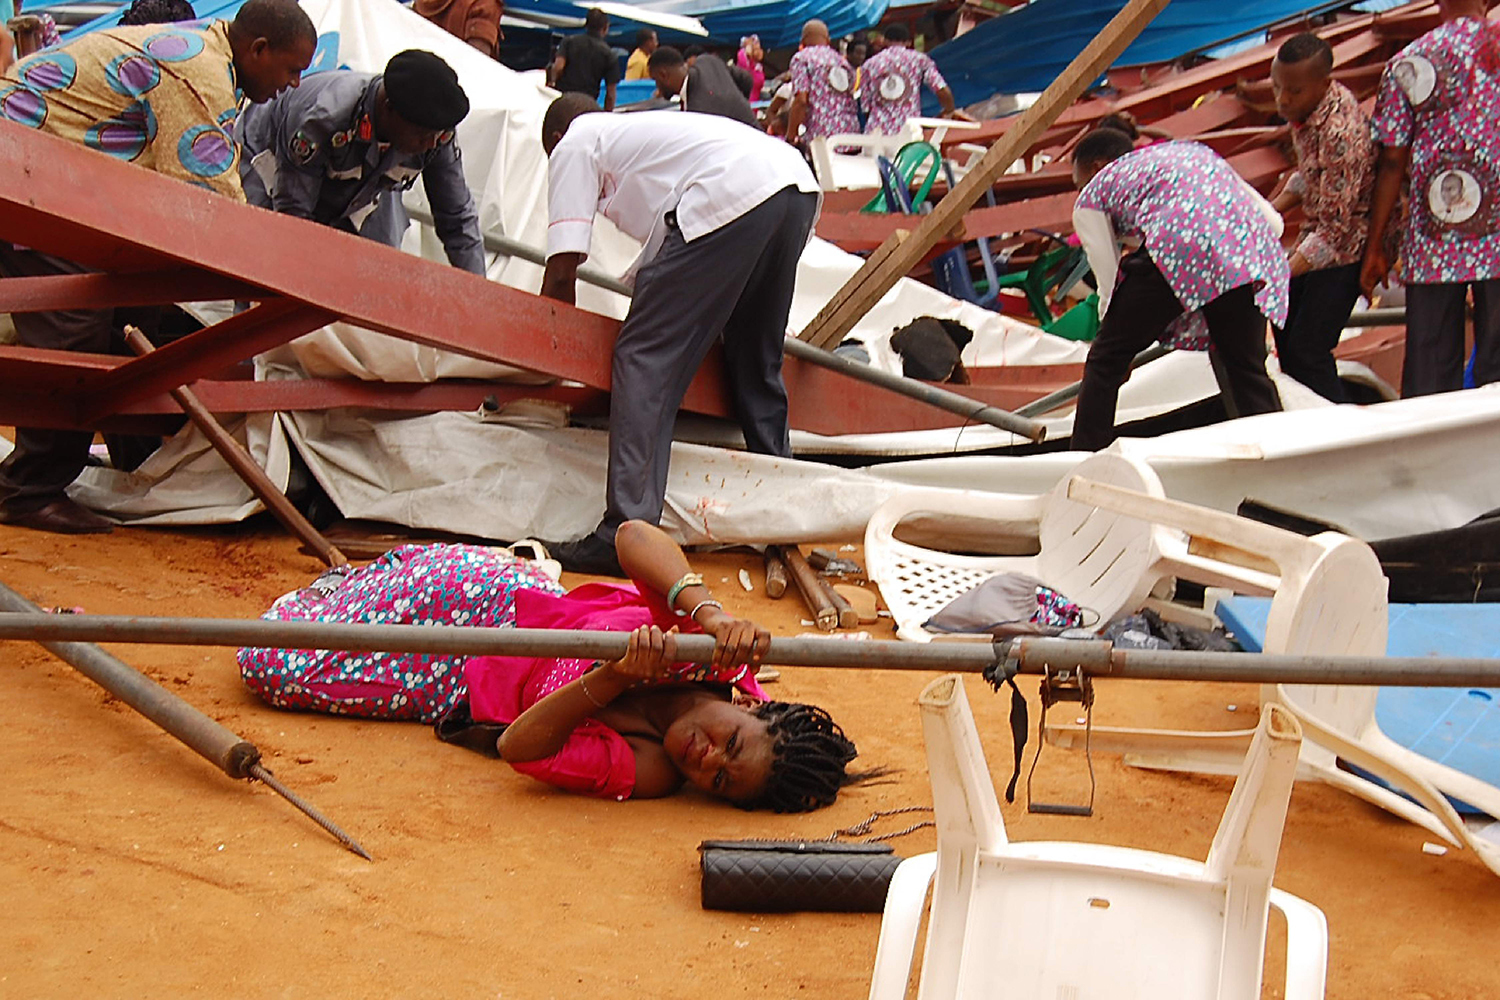 TOPSHOT - This picture taken on December 10, 2016 shows a woman stuck under a scaffolding bar amid rubbles at the scene after an evengelical church roof collapsed on worshippers in the remote southeastern city of Uyo, the capital of Akwa Ibom state. The search for survivors continued after a church roof collapsed killing at least 60 people, with many more feared dead. / AFP PHOTO / STRINGER / TT / kod 444